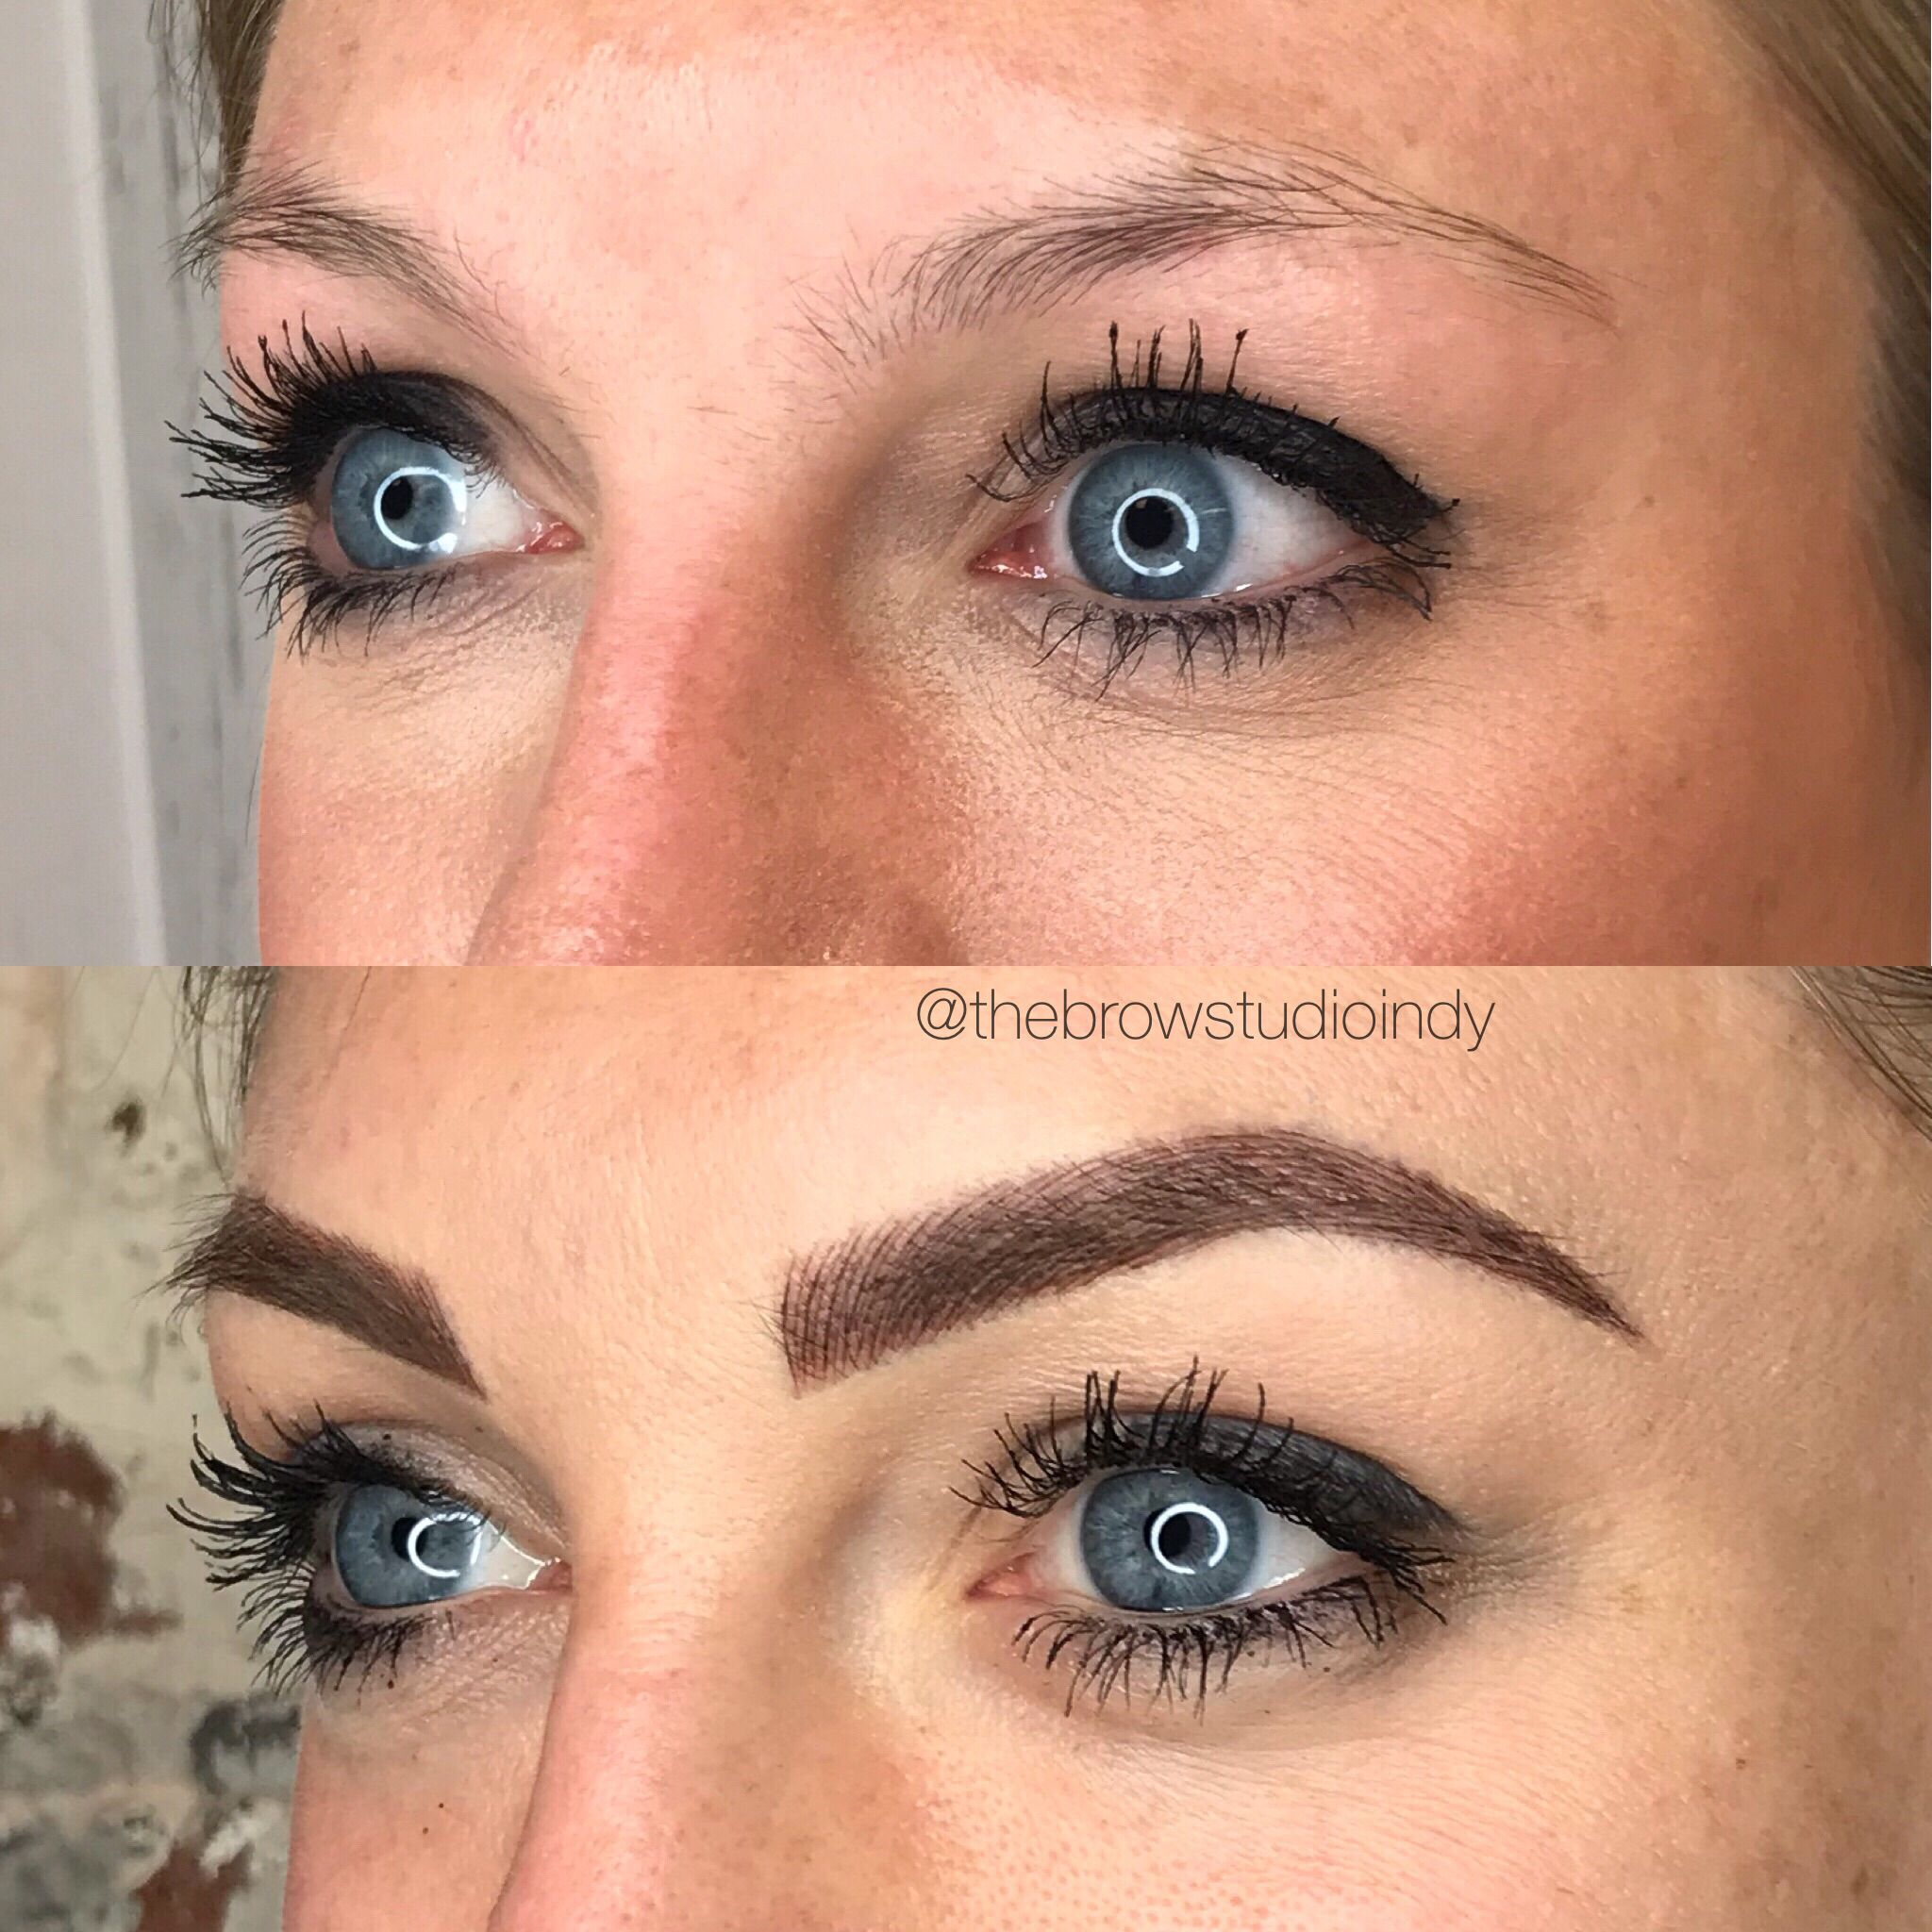 Before and After Microblading | Eyebrow Tattoo | Microblading